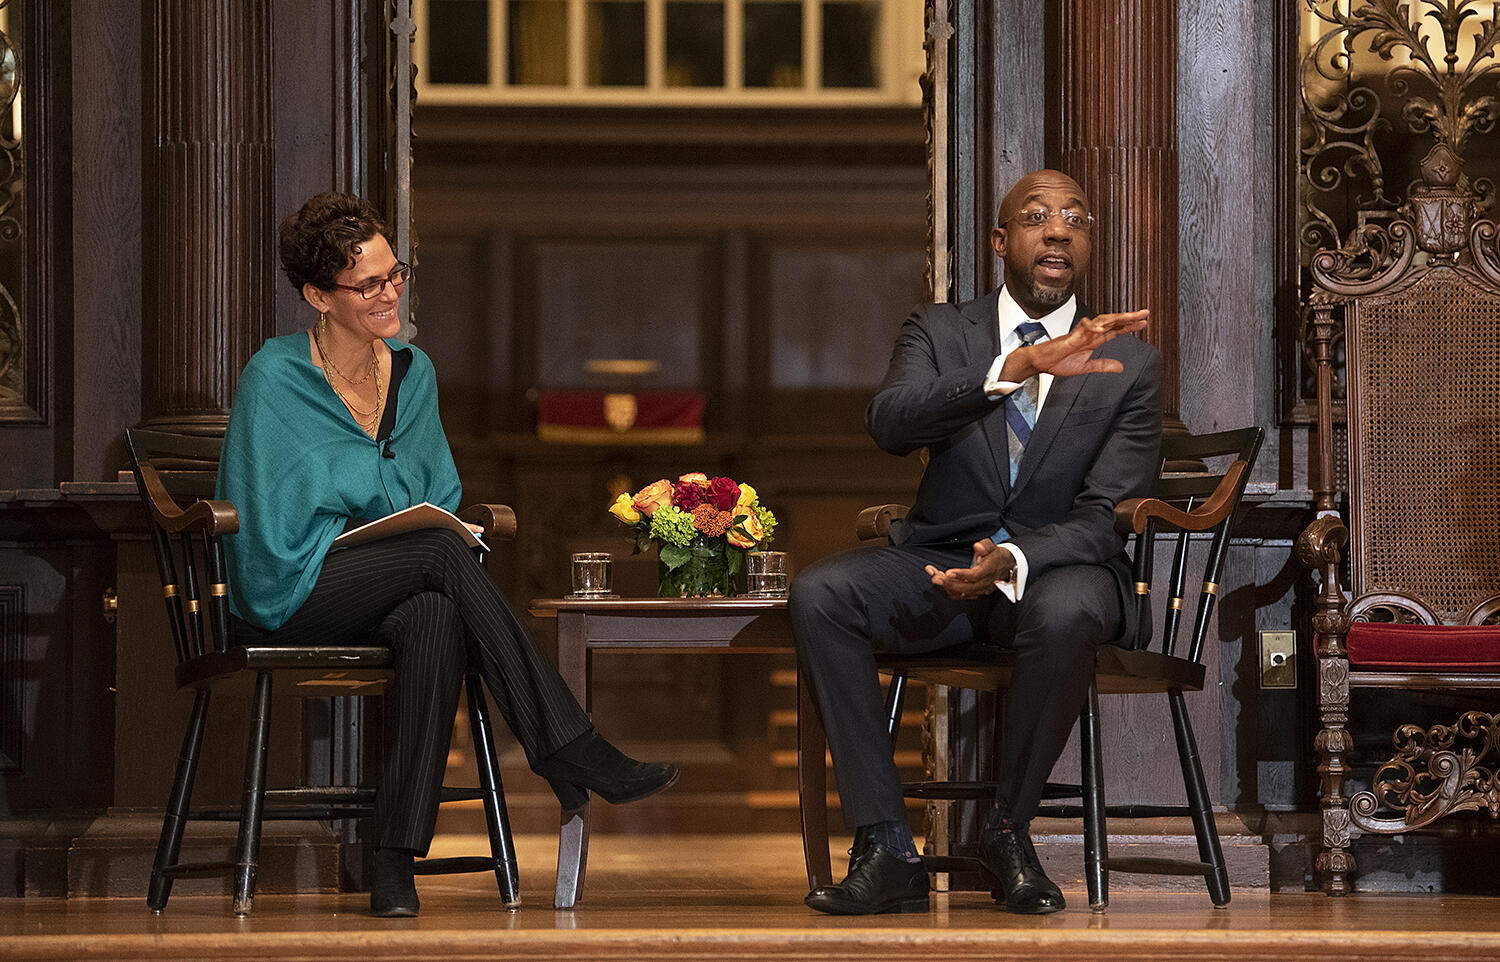 The Rev. Dr. Raphael Warnock answers question as Noble Lecture